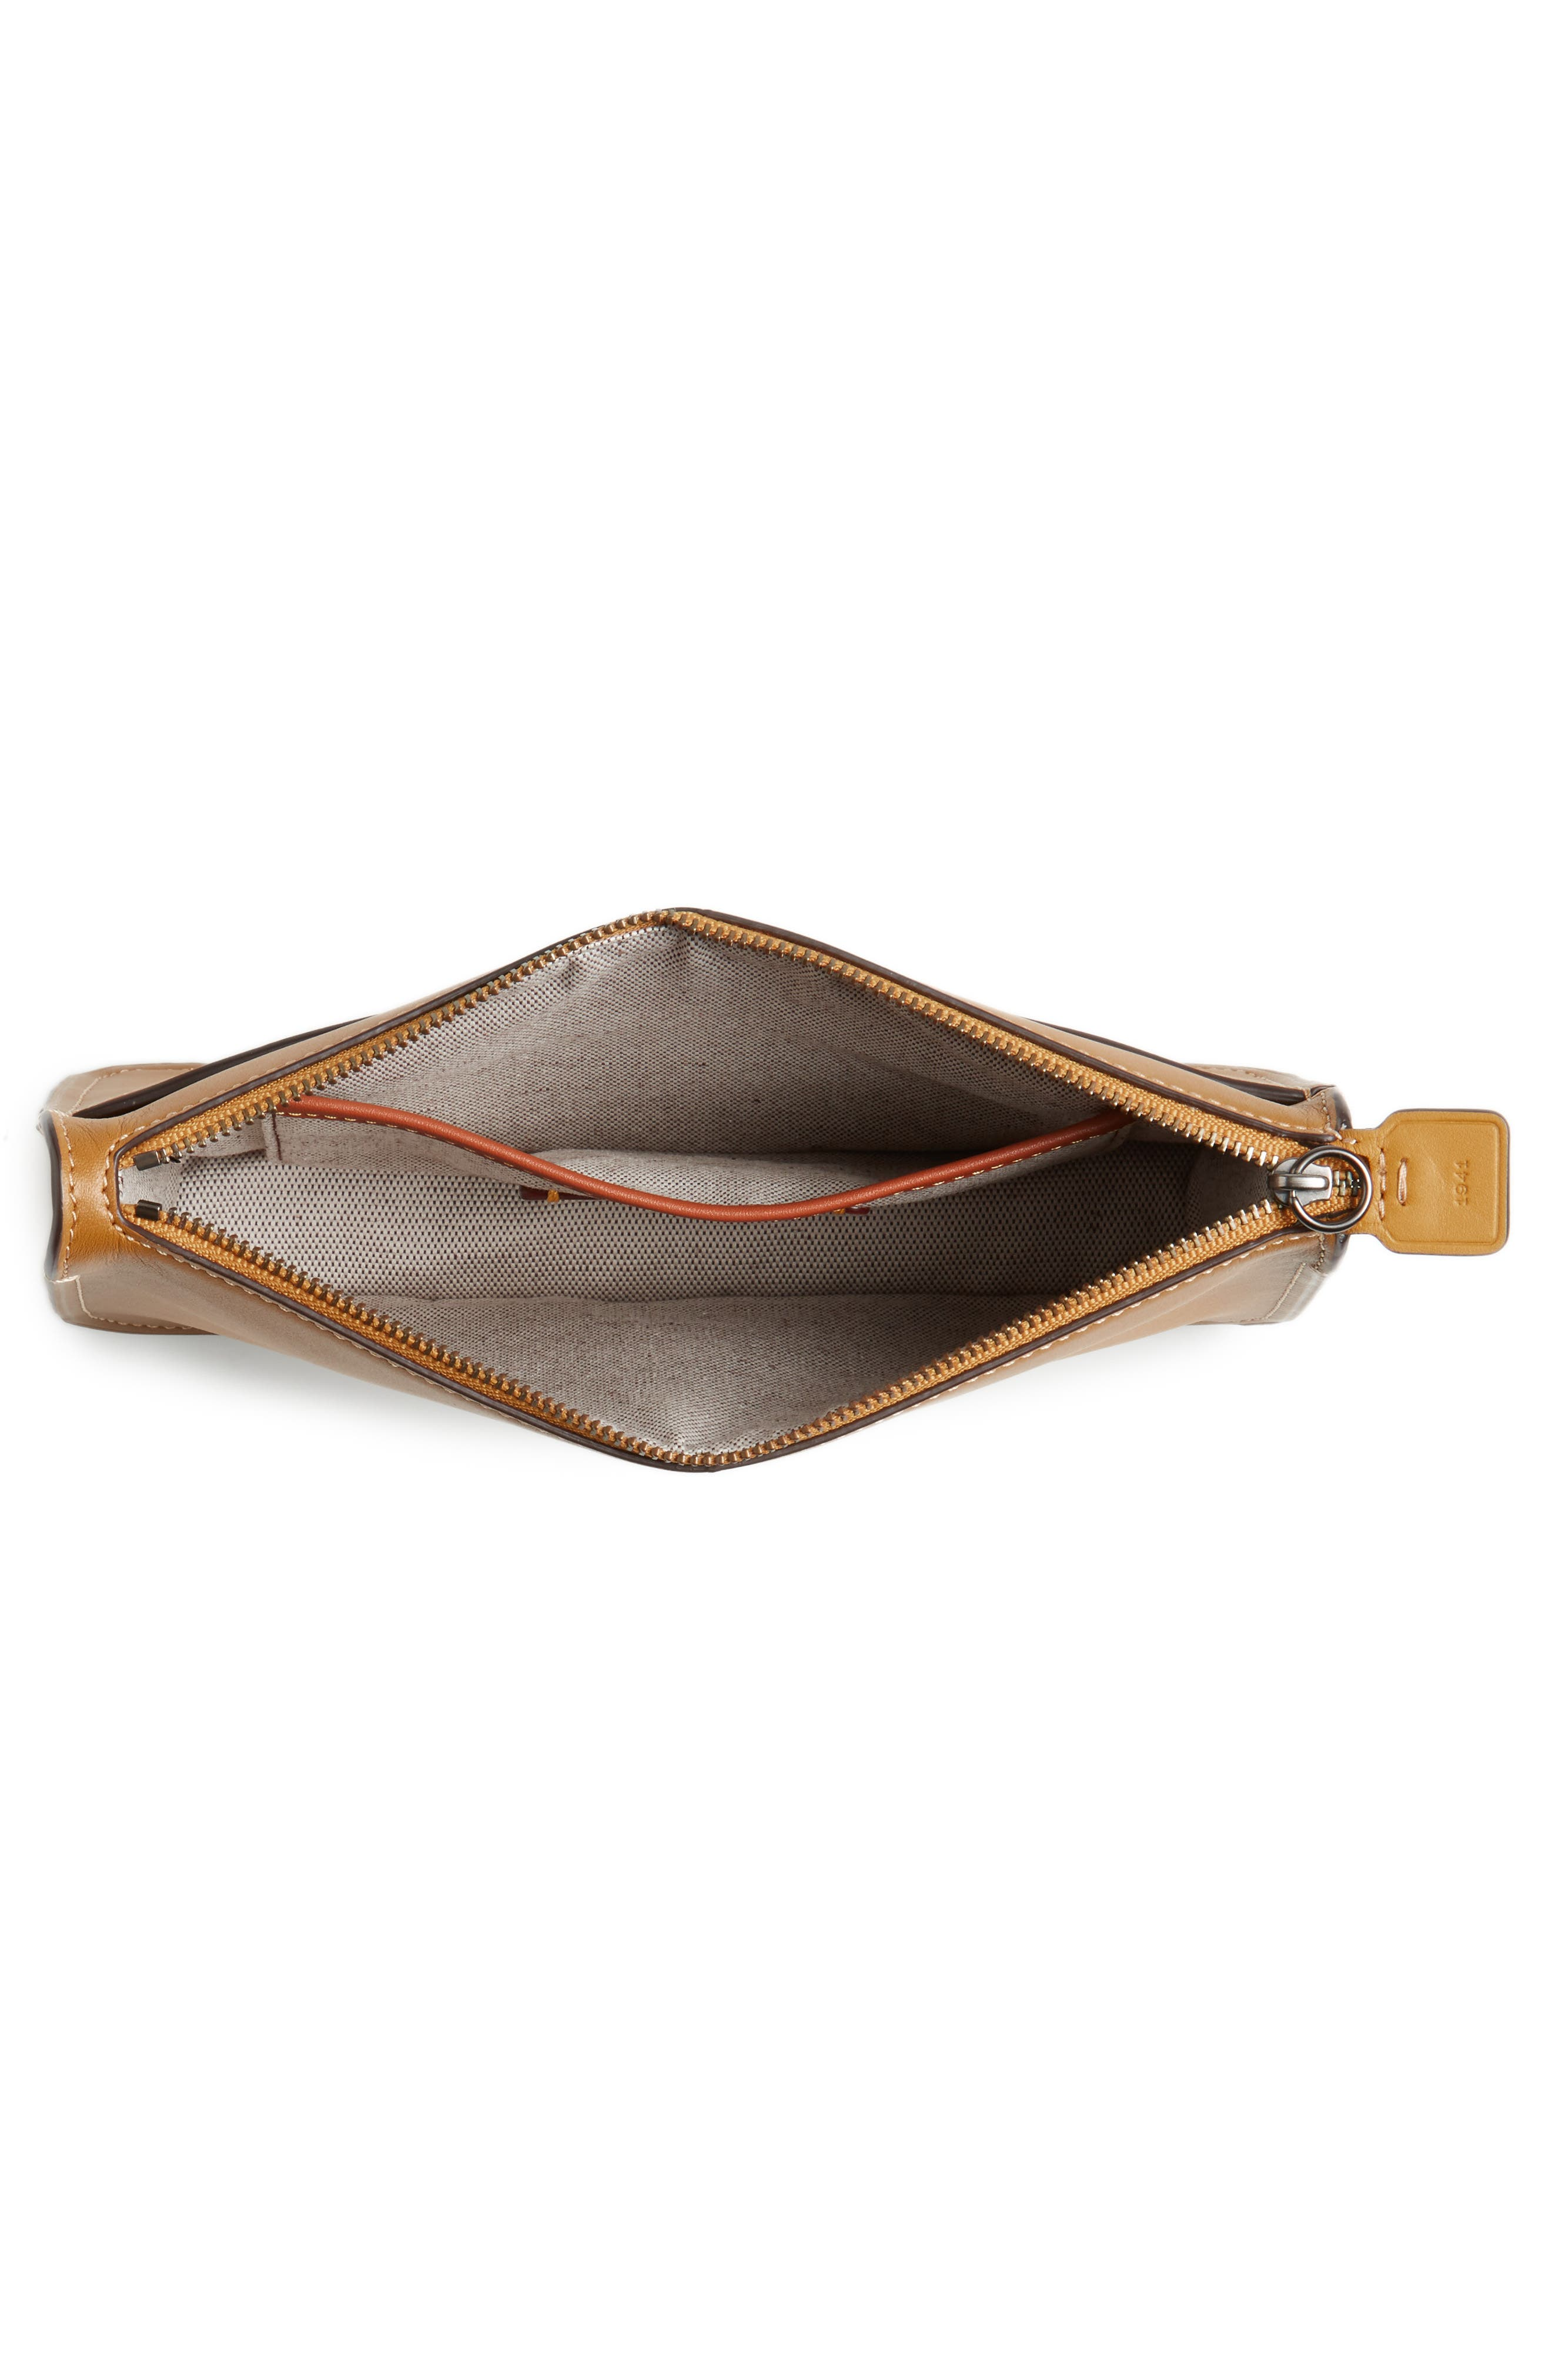 Soho Leather Crossbody Bag,                             Alternate thumbnail 4, color,                             Flax